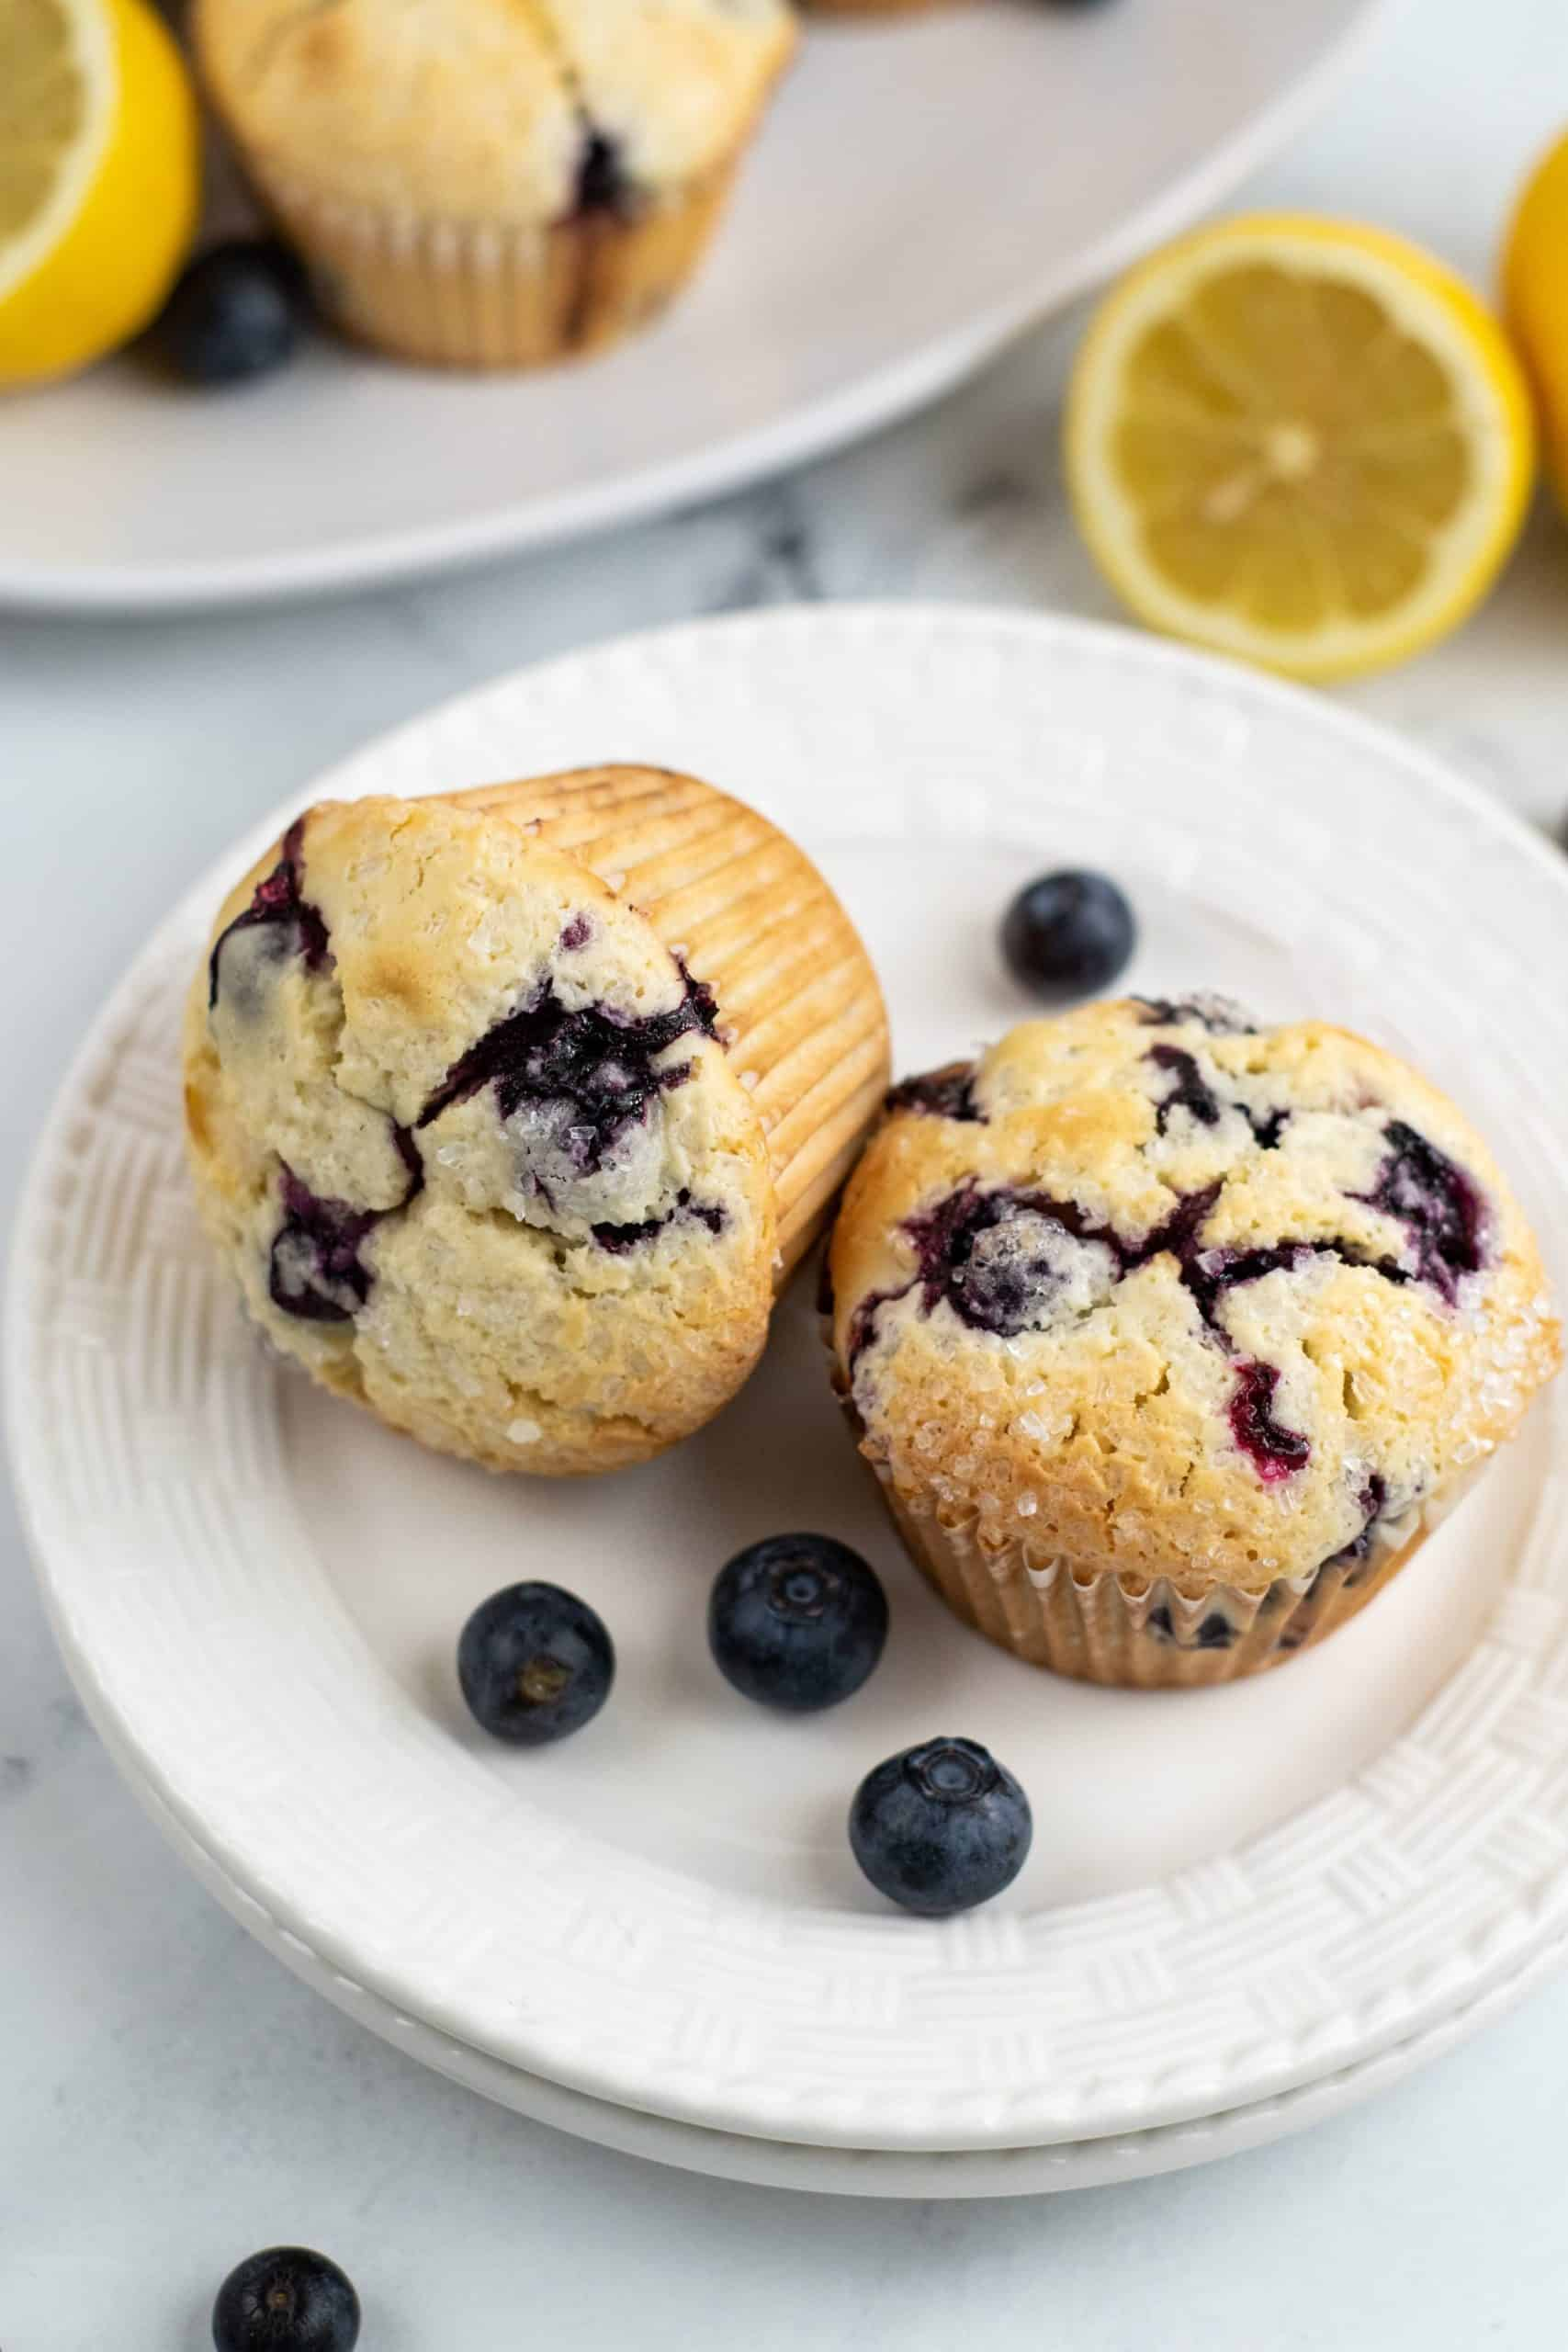 Two blueberry muffins on a white plate with a scattering of blueberries on the top.